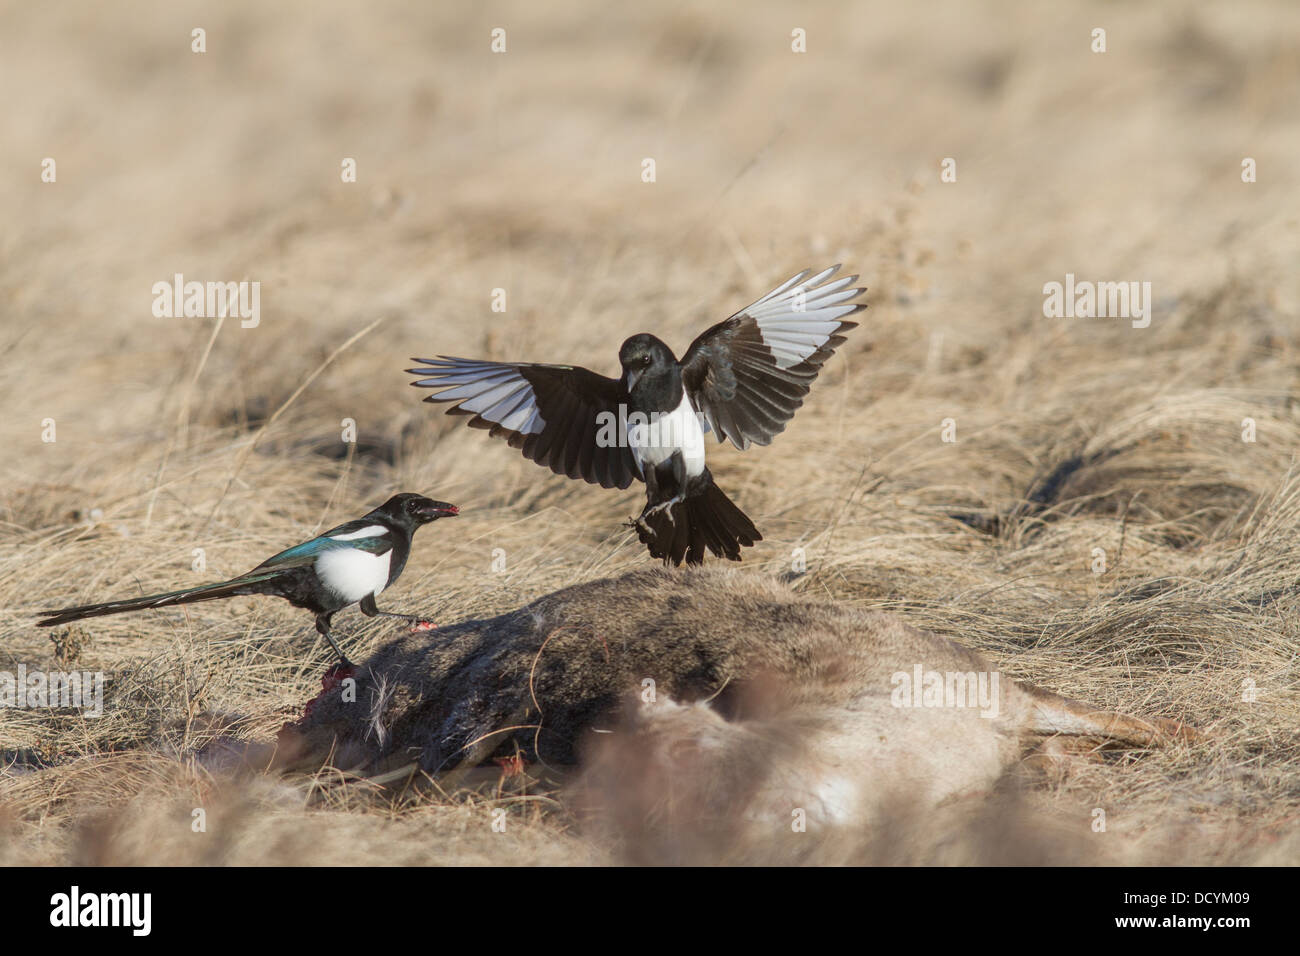 Black-billed Magpie (Pica hudsonia) Colorful pair of scavenger birds, perched & landing on a dead deer carcass, - Stock Image